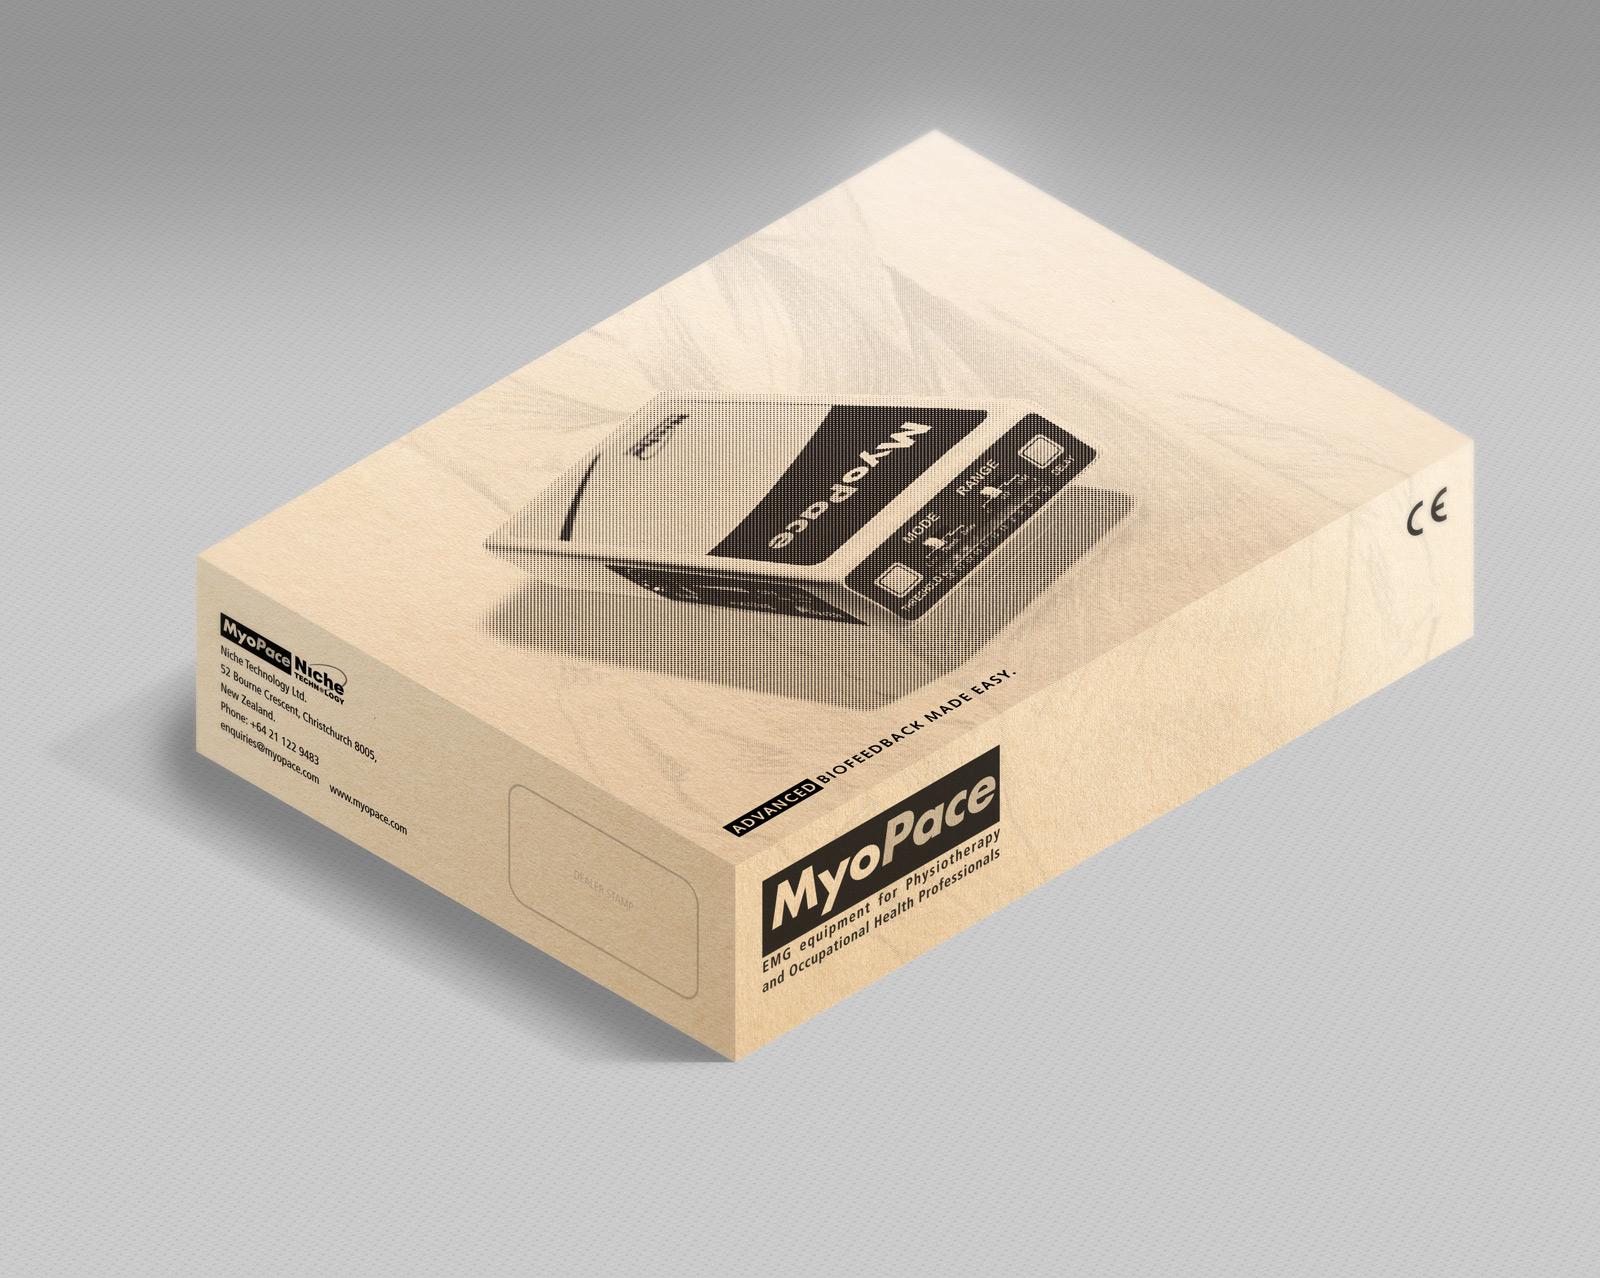 MyoPace outer-shipping carton. Printed one colour, black, onto corrugated Kraft board.